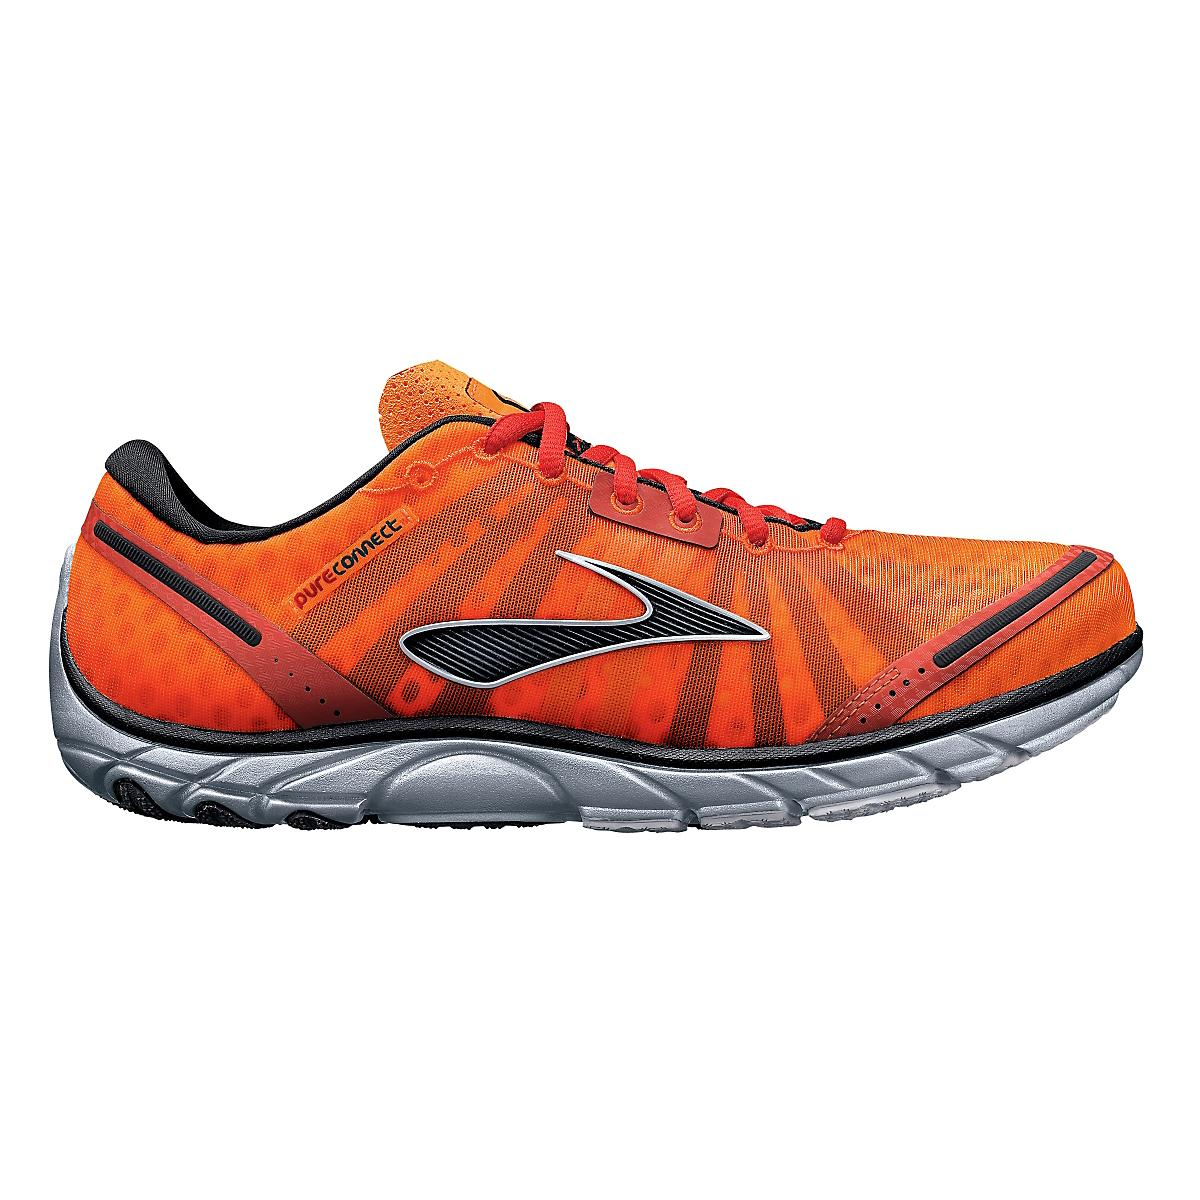 295ff0110b8 Mens Brooks PureConnect Running Shoe at Road Runner Sports